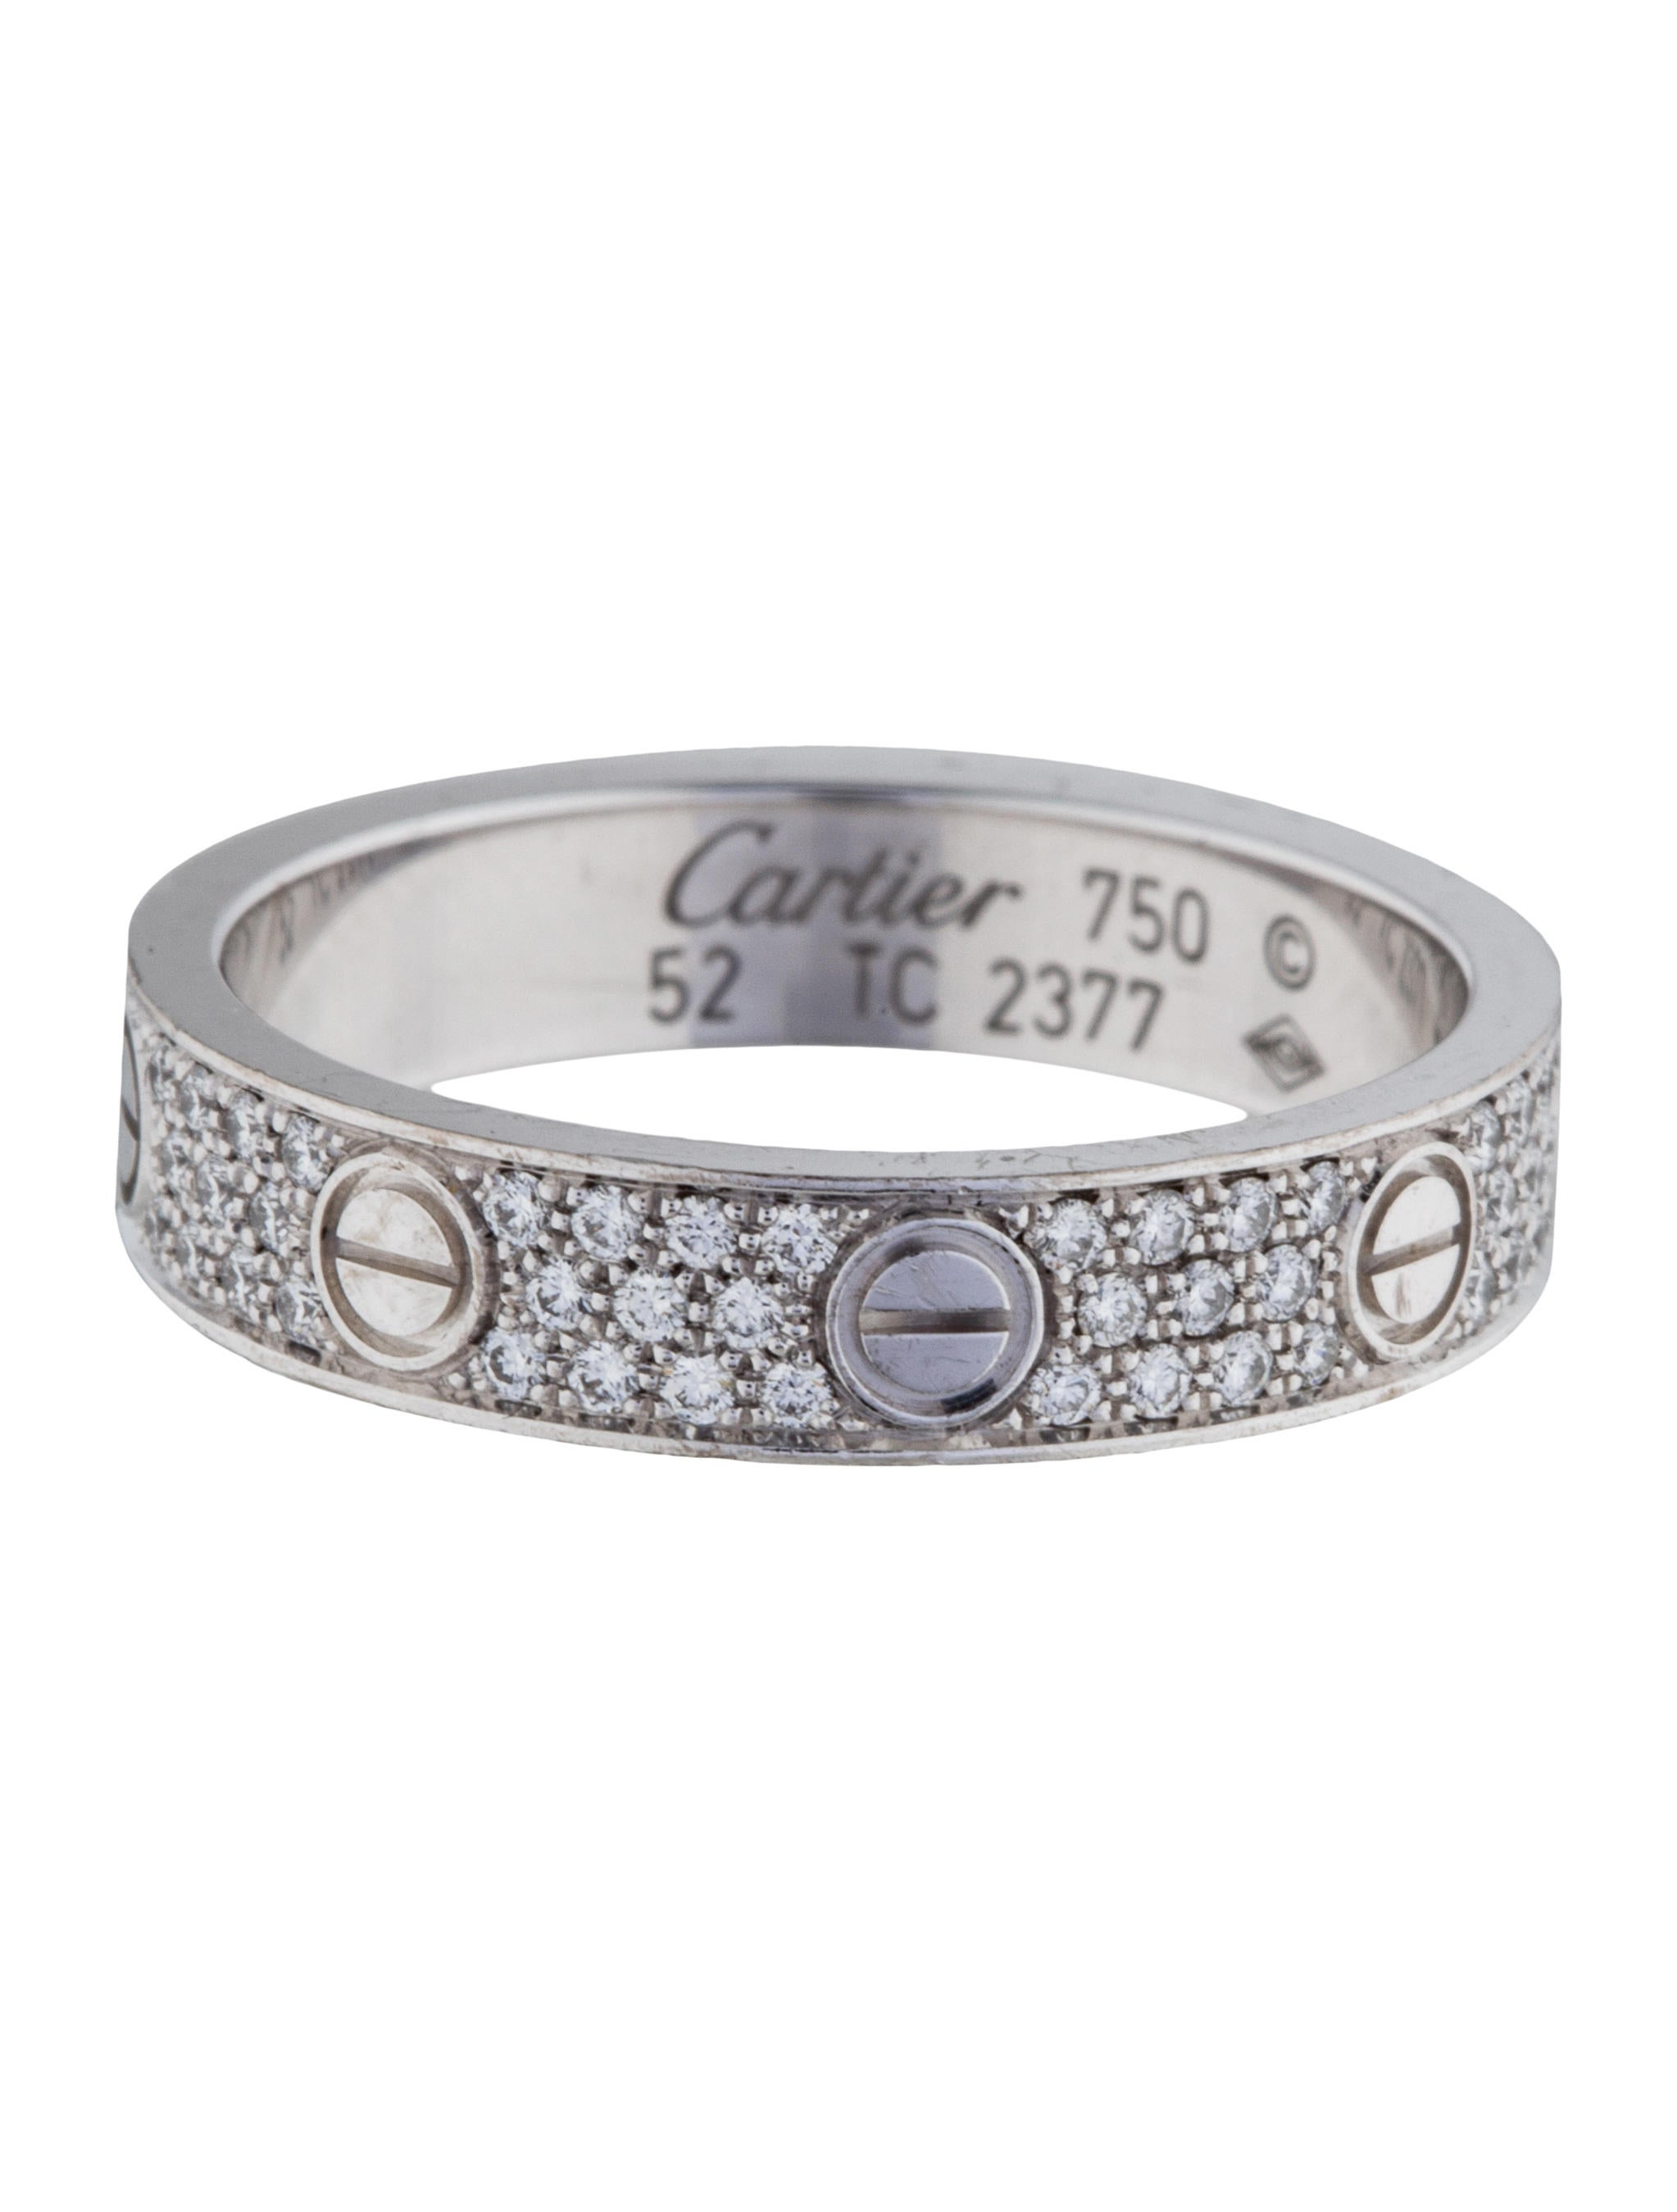 Cartier Diamond Paved Love Wedding Band Rings Crt25431